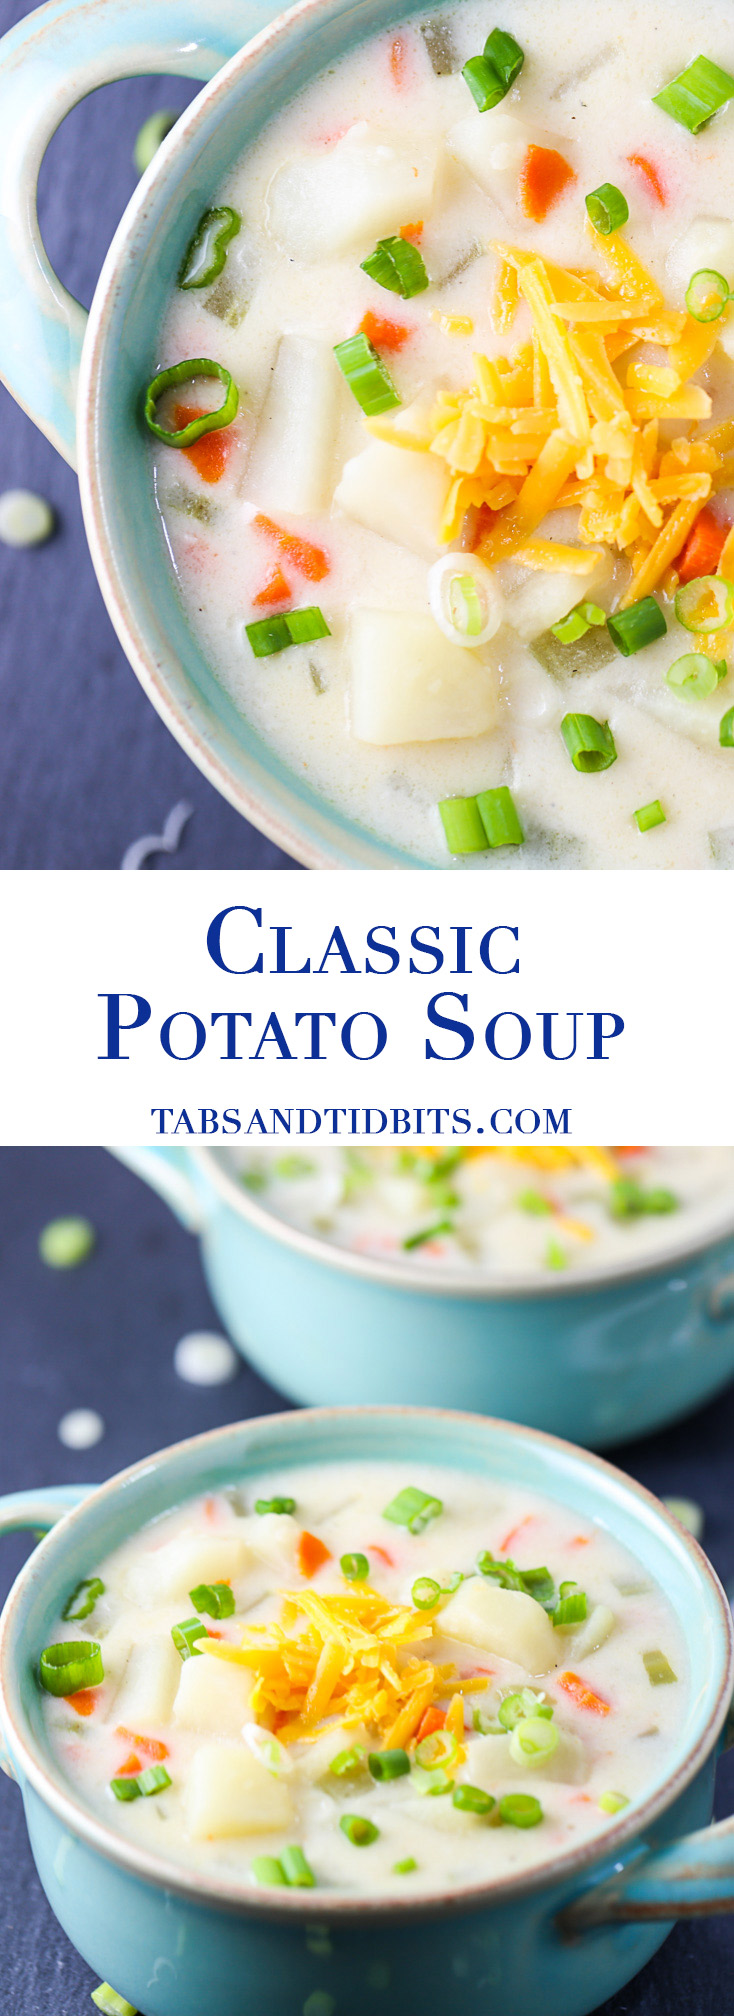 Classic Potato Soup - A creamy, delicious, and filling potato soup full of the classic veggies!